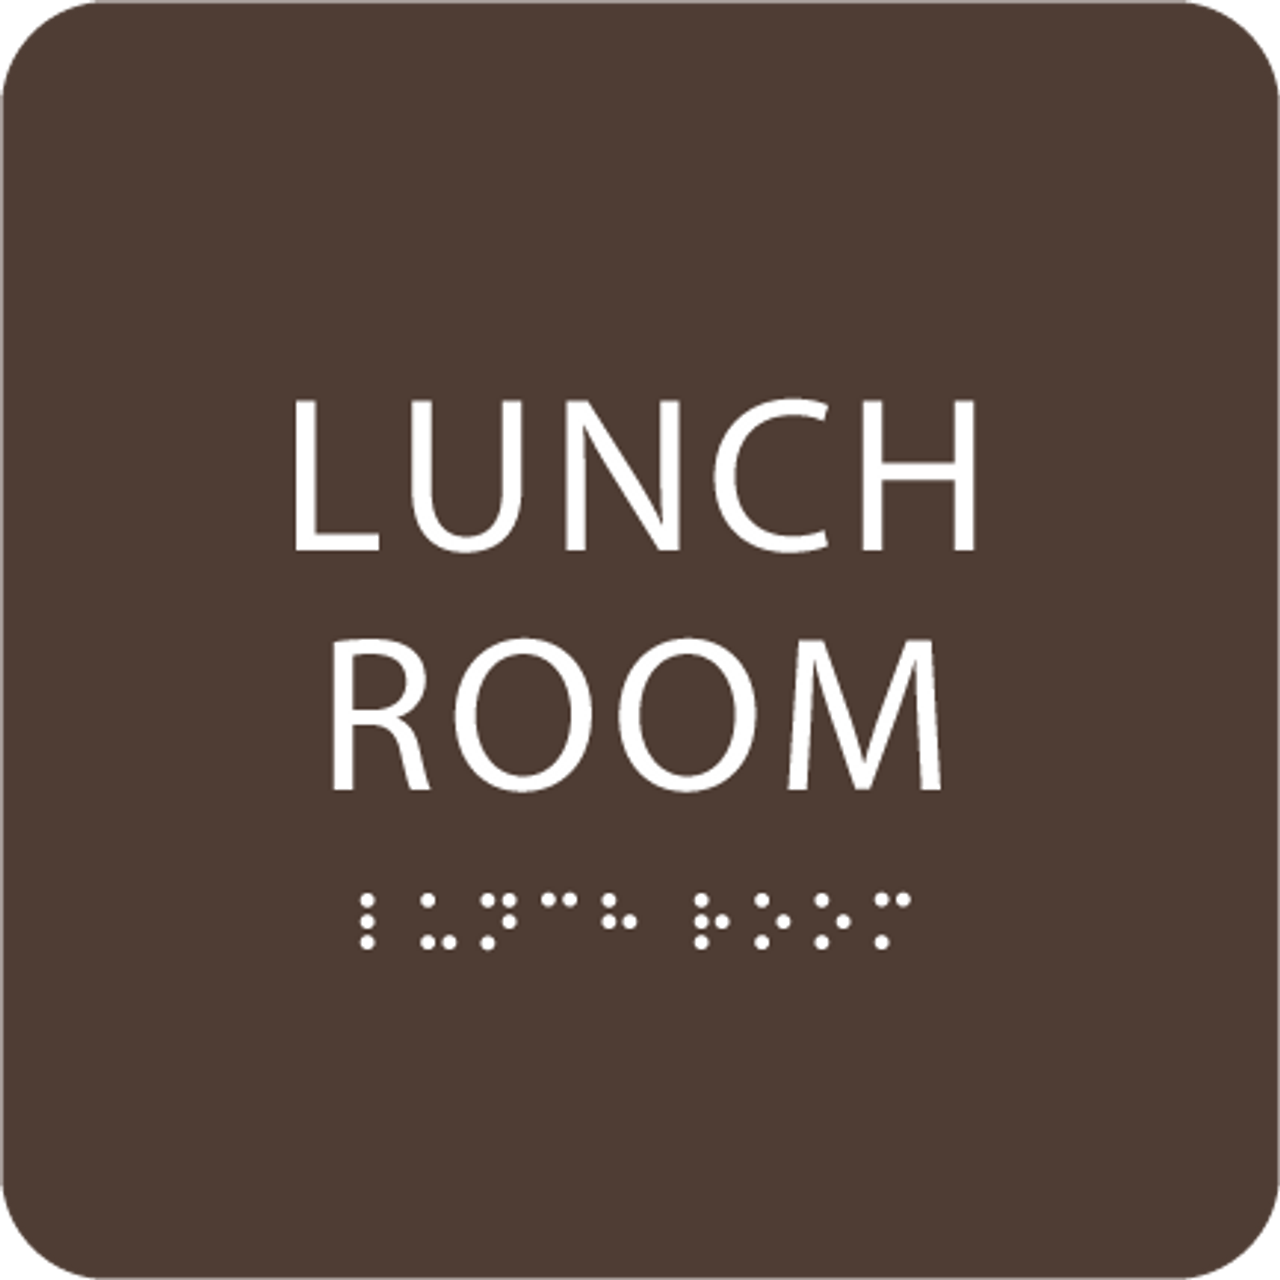 Dark Brown Lunch Room ADA Sign